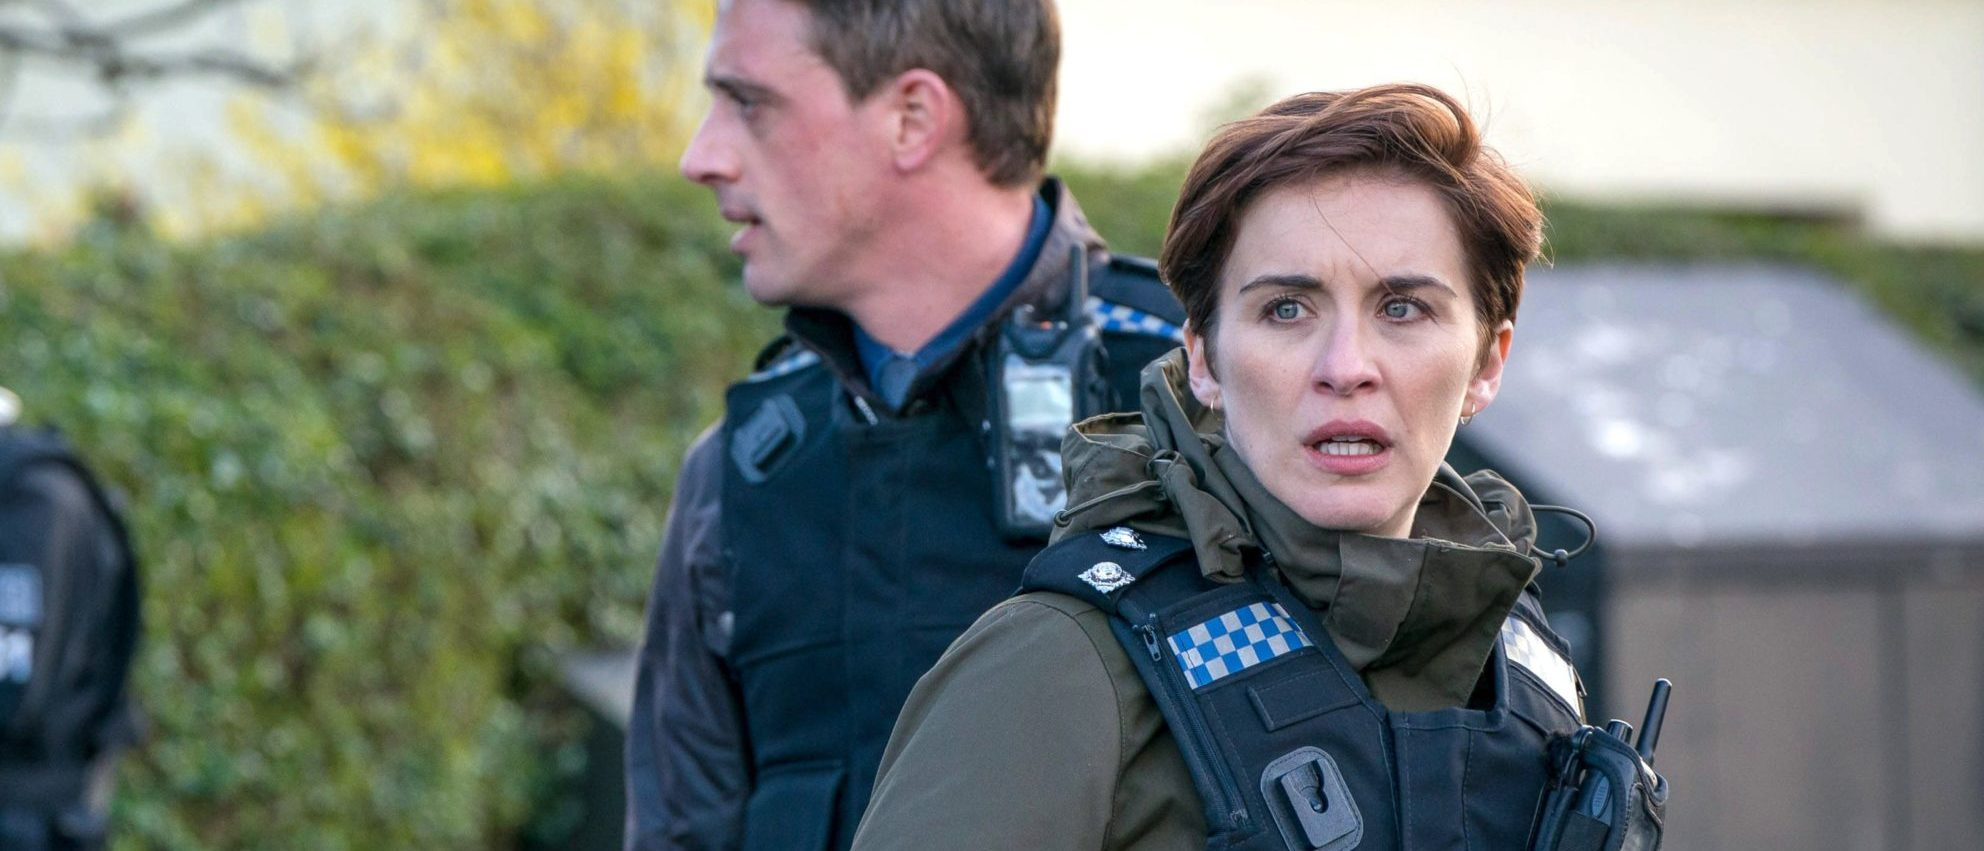 Line of Duty Season 6 Episode 3 Release Date and Spoilers